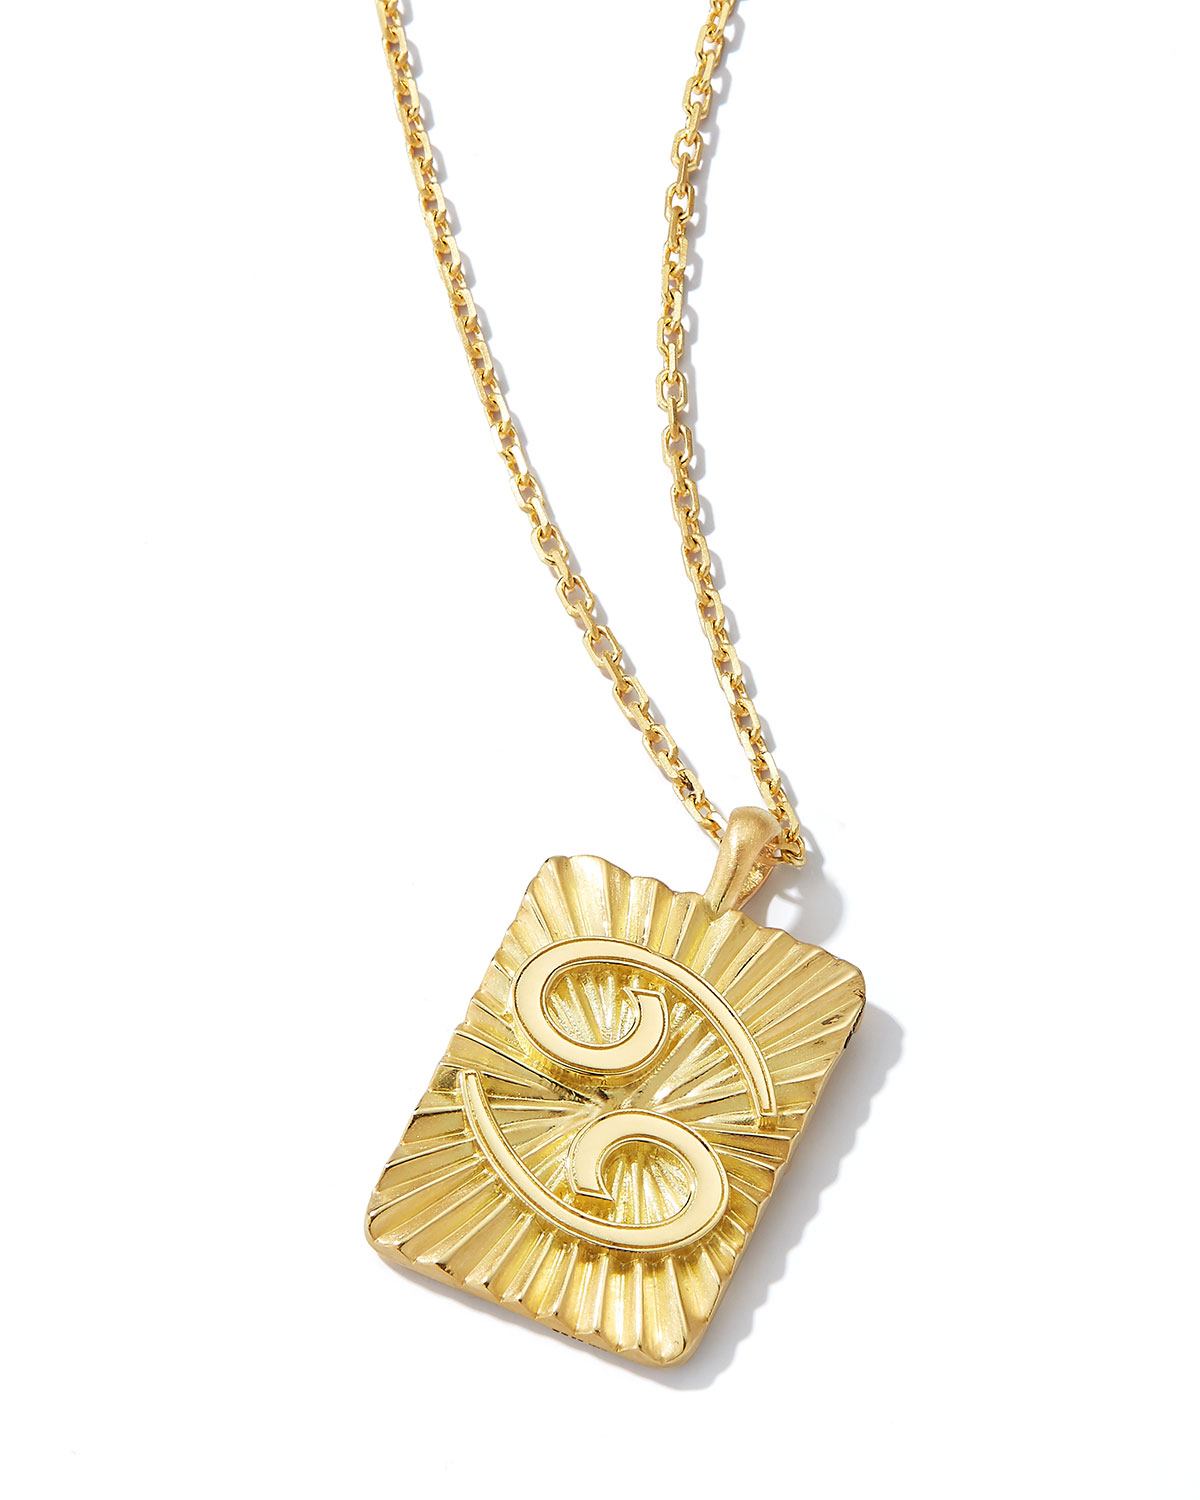 Cancer Zodiac Pendant Necklace in 18k Gold